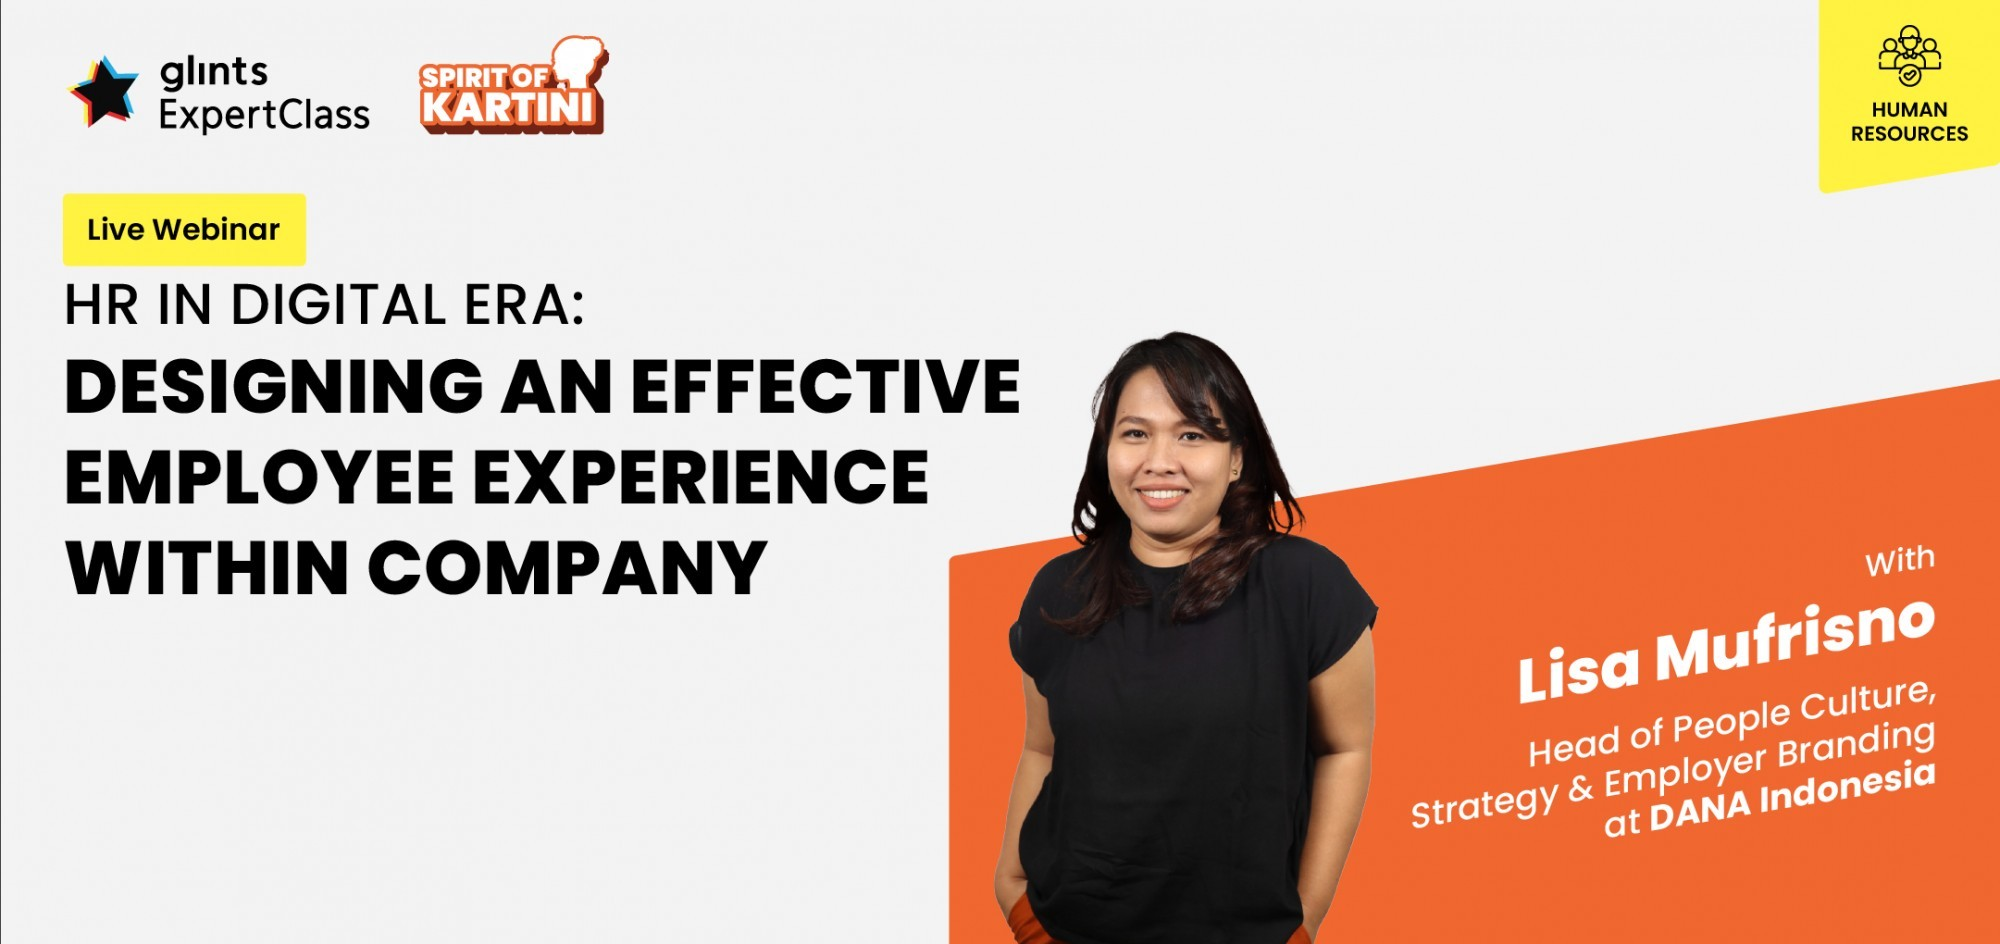 HR in Digital Era: Designing an Effective Employee Experience Within Company